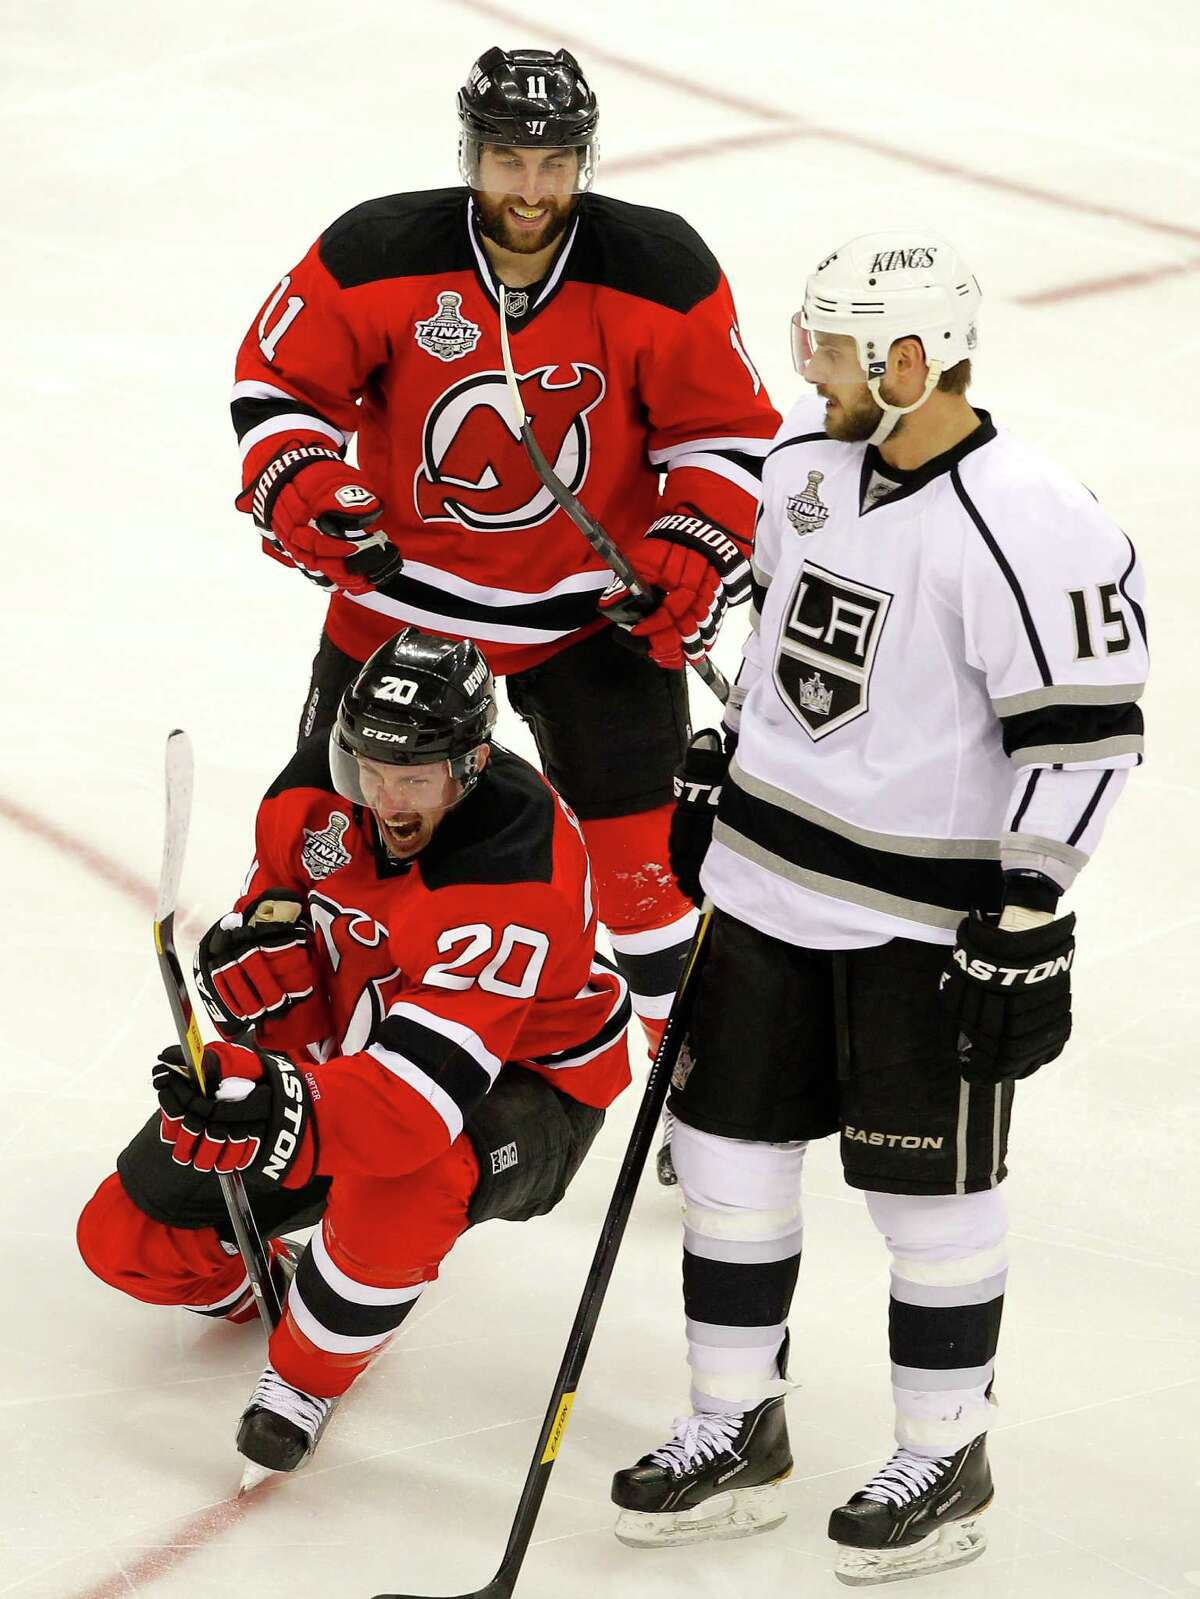 NEWARK, NJ - JUNE 02: Ryan Carter #20 of the New Jersey Devils celebrates after scoring a goal in the third period with Stephen Gionta #11 as Brad Richardson #15 of the Los Angeles Kings looks on during Game Two of the 2012 NHL Stanley Cup Final at the Prudential Center on June 2, 2012 in Newark, New Jersey. (Photo by Paul Bereswill/Getty Images)